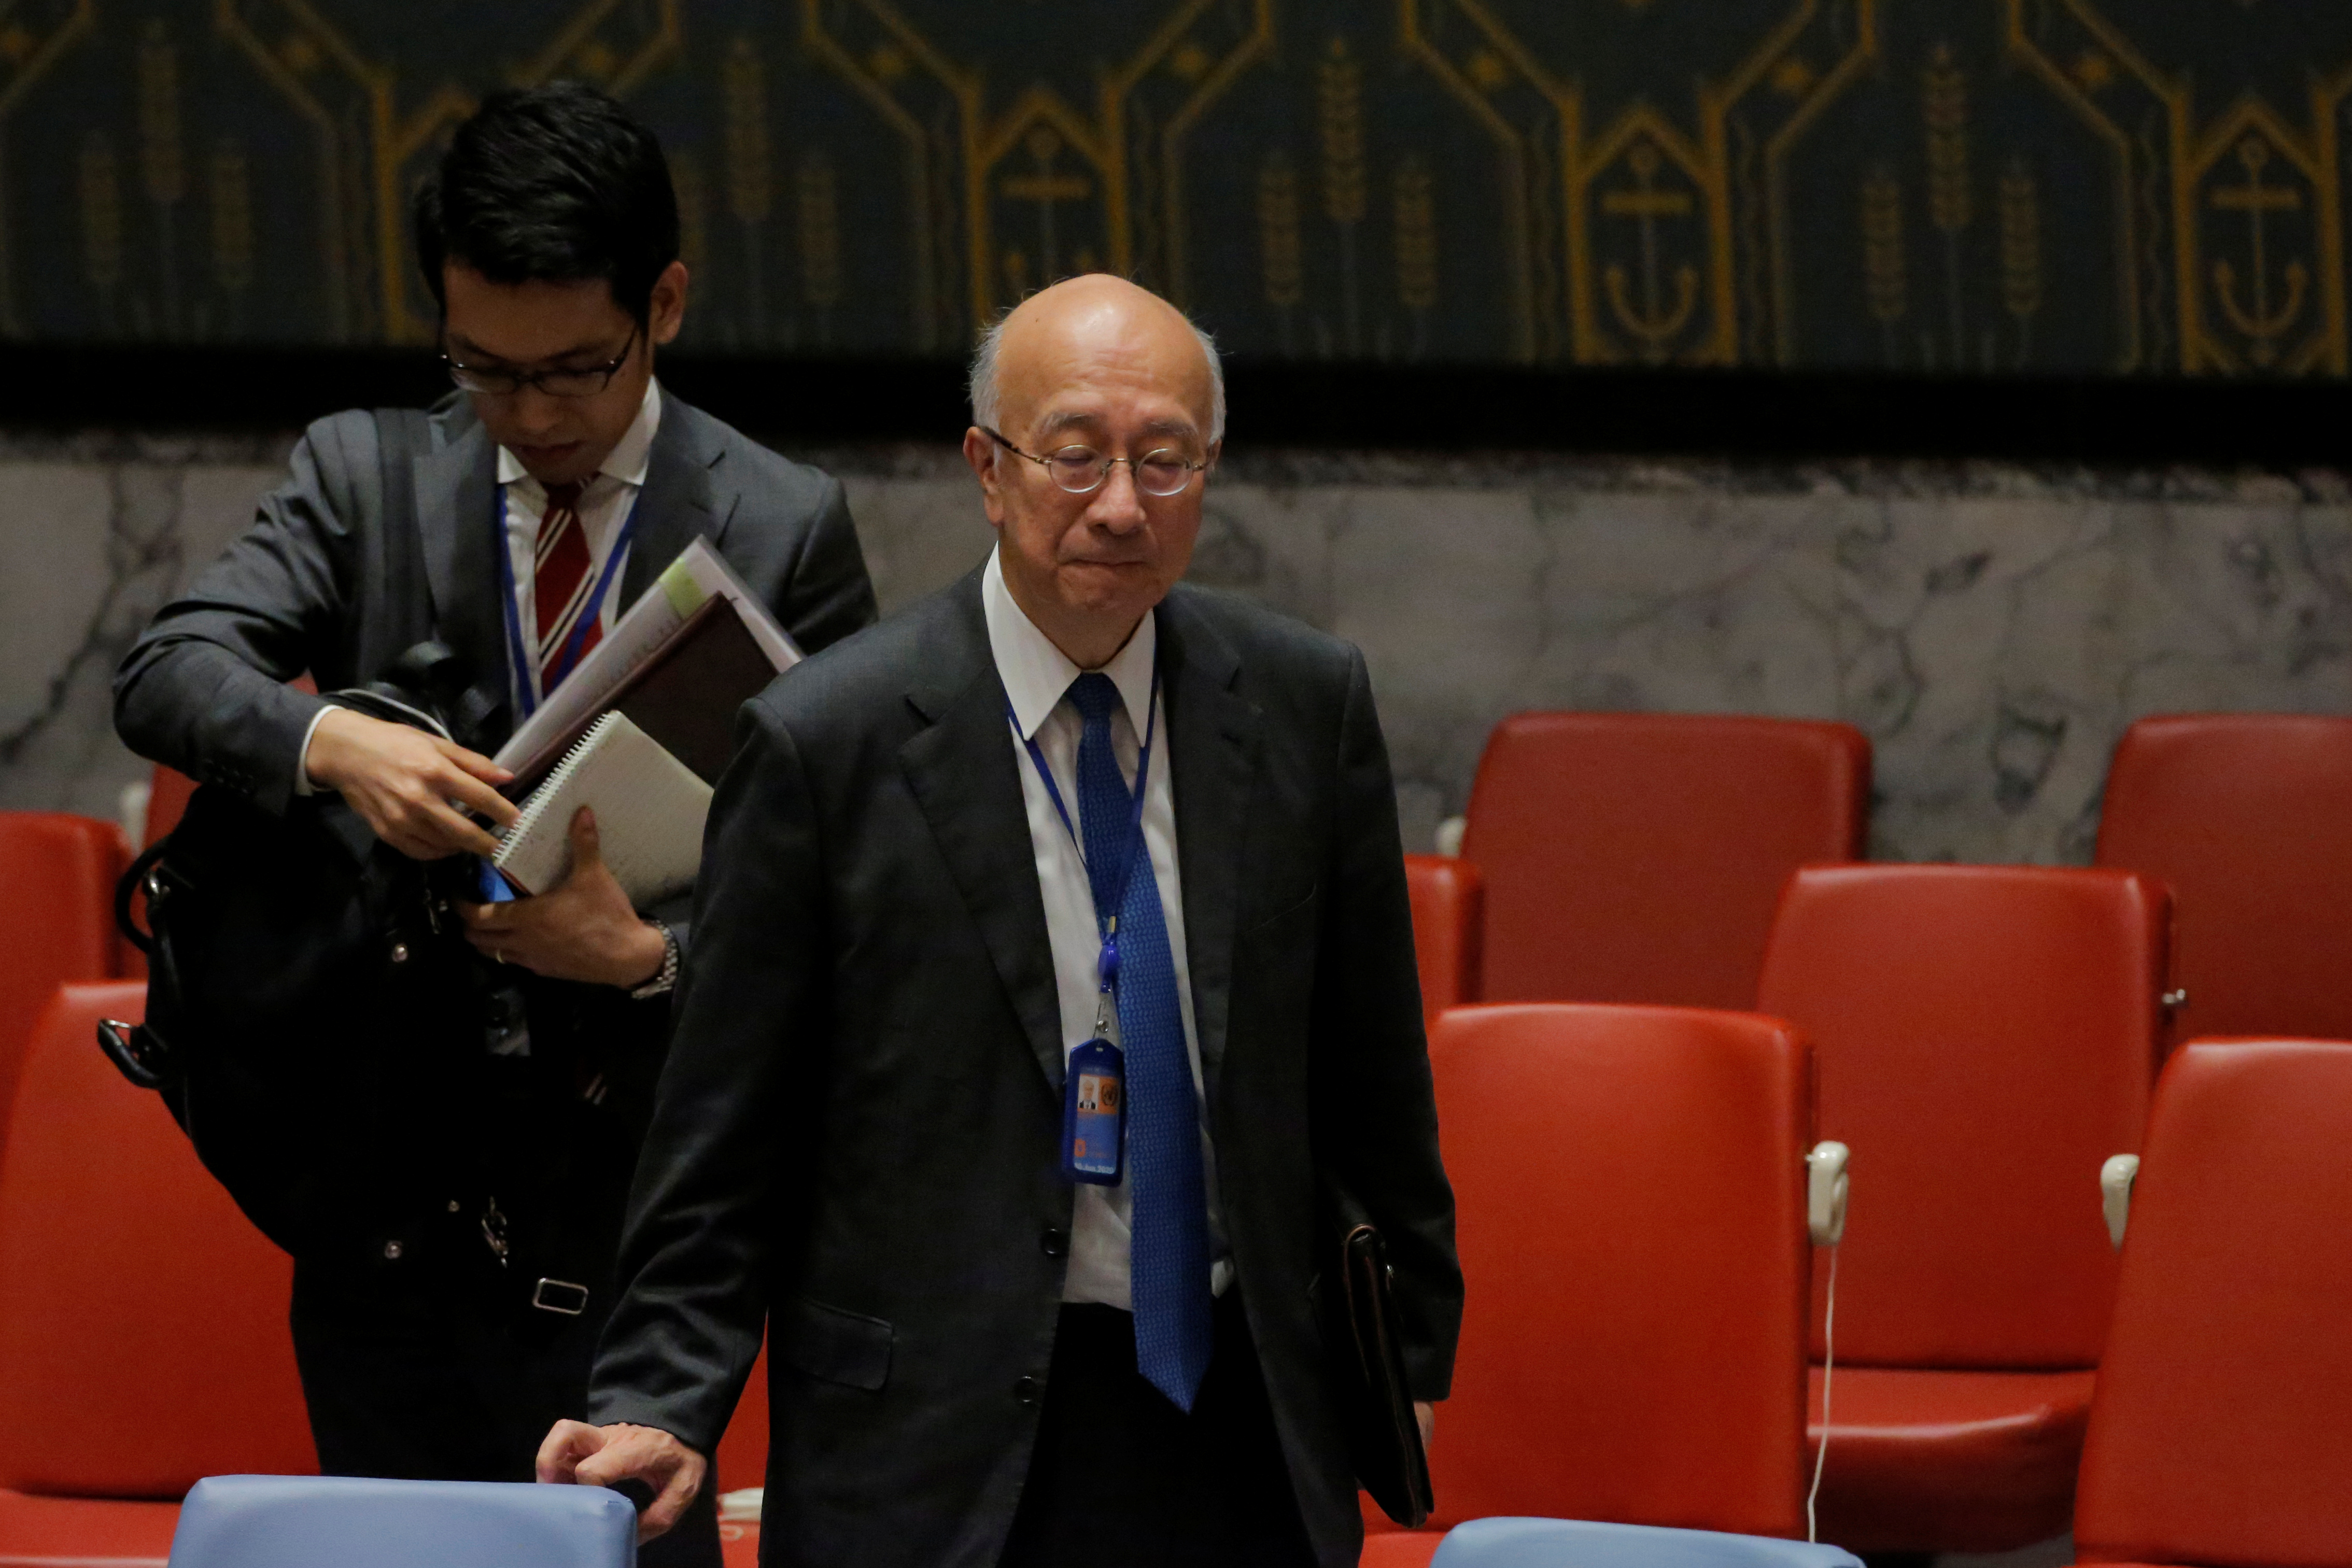 Japan's U.N. Ambassador Koro Bessho stands following a meeting by the United Nations Security Council on North Korea at the U.N. headquarters in New York City on Aug. 29, 2017.  (REUTERS/Andrew Kelly)